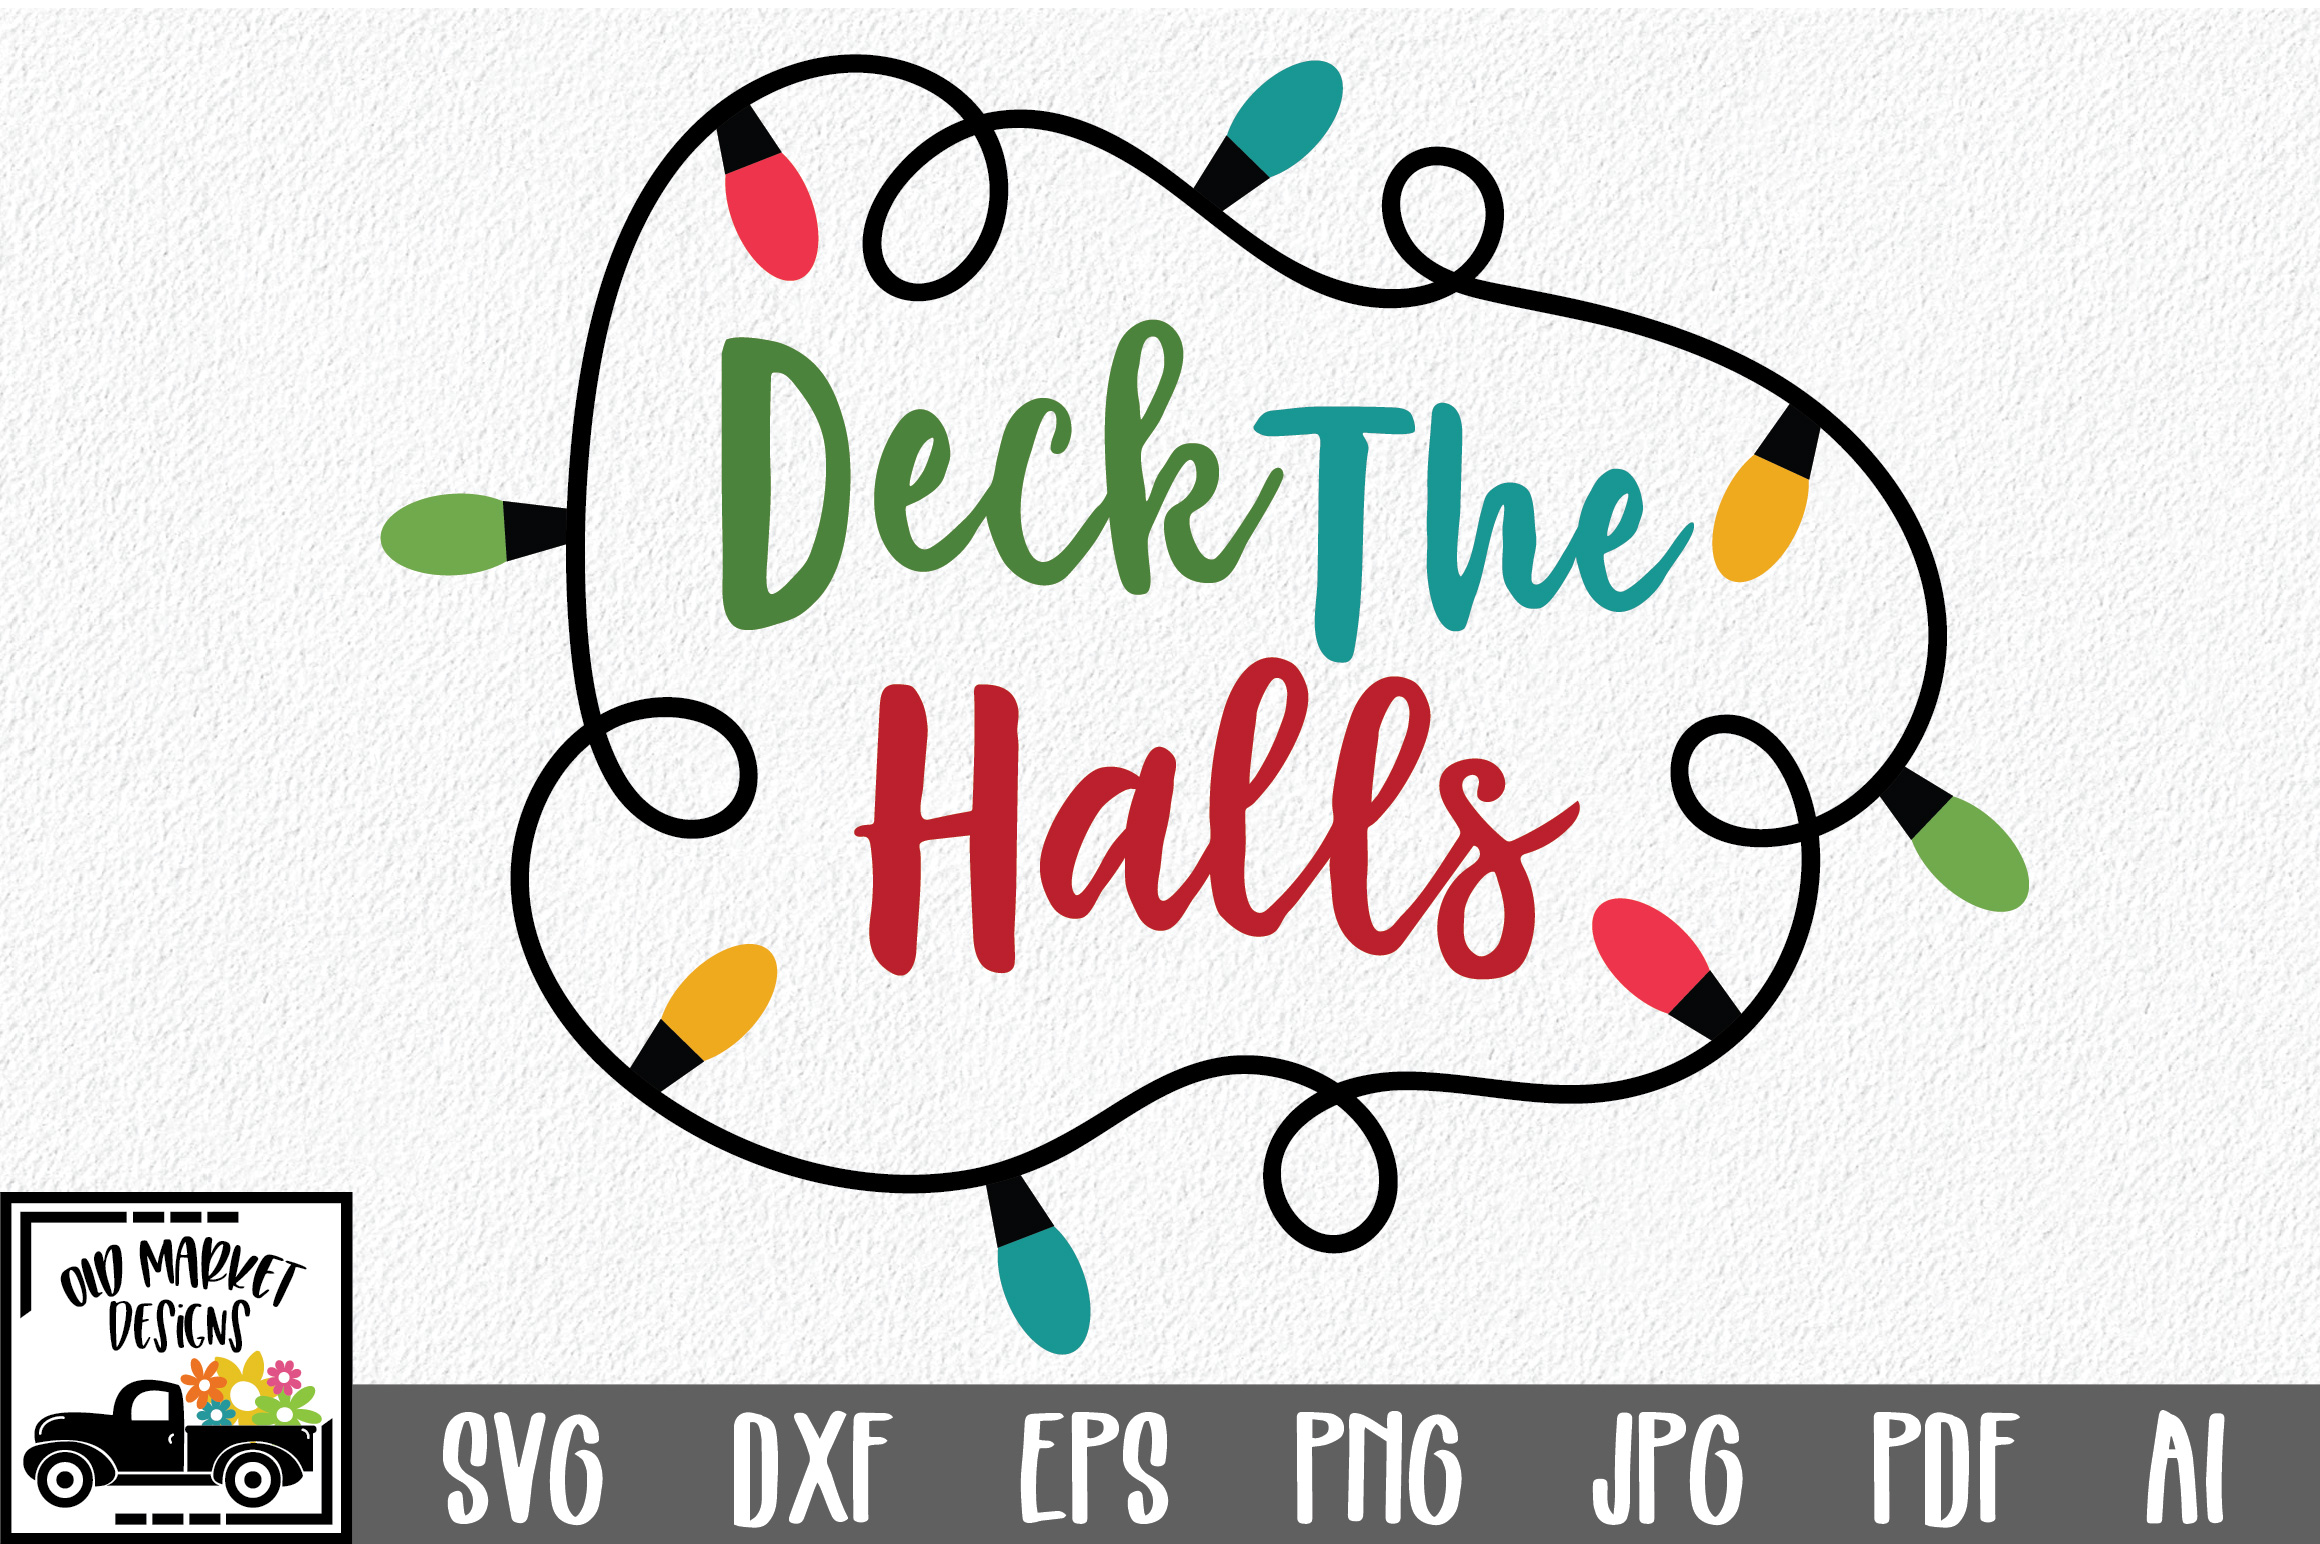 Free Christmas Svg Cut File Free Svg Cut Files Create Your Diy Projects Using Your Cricut Explore Silhouette And More The Free Cut Files Include Svg Dxf Eps And Png Files